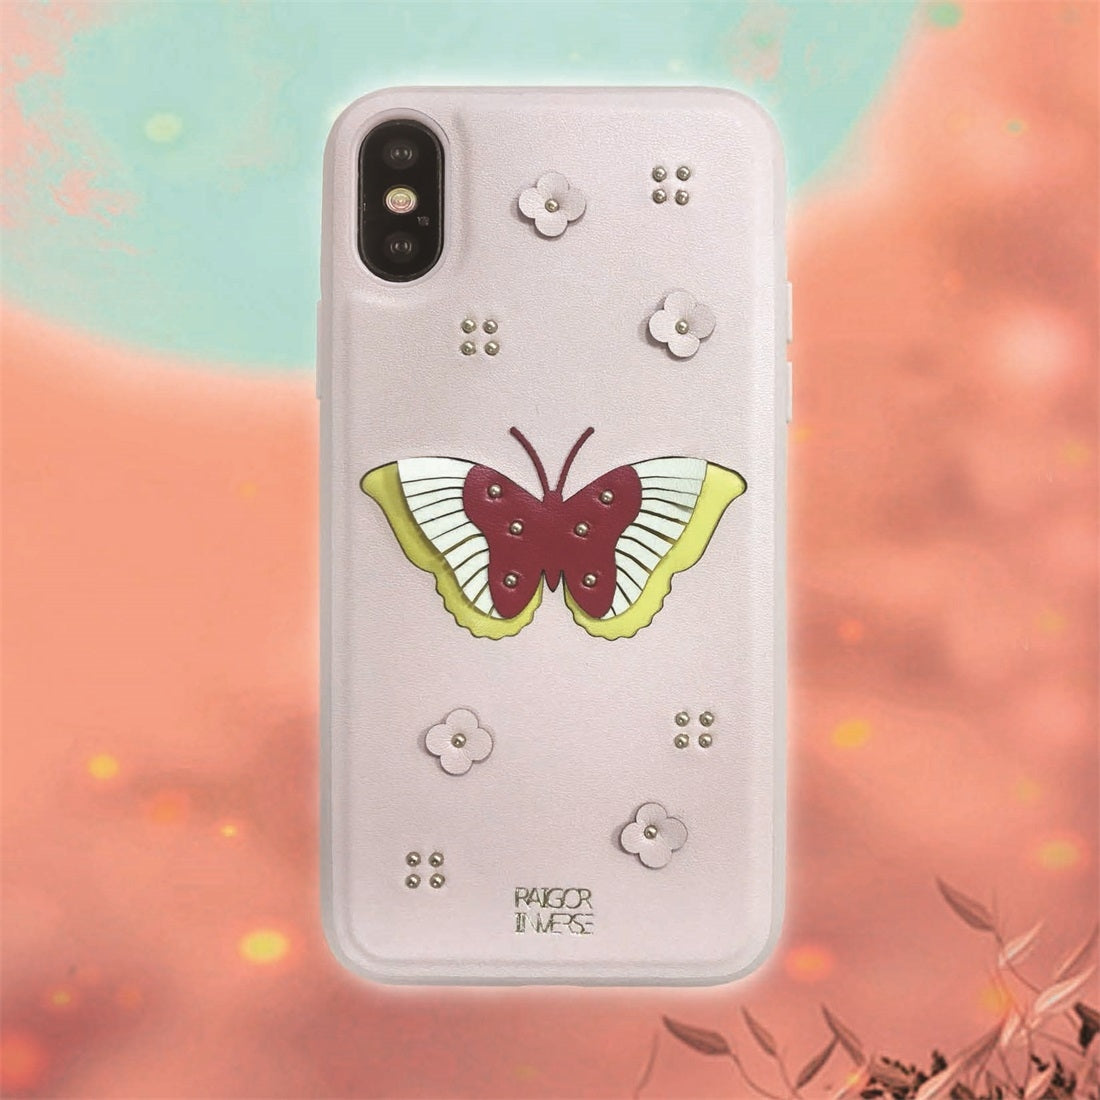 i1129 RAIGOR INVERSE Butterfly Series Case for iPhone - i-s-mart.com | No.1 Branded Online Shop in Cambodia